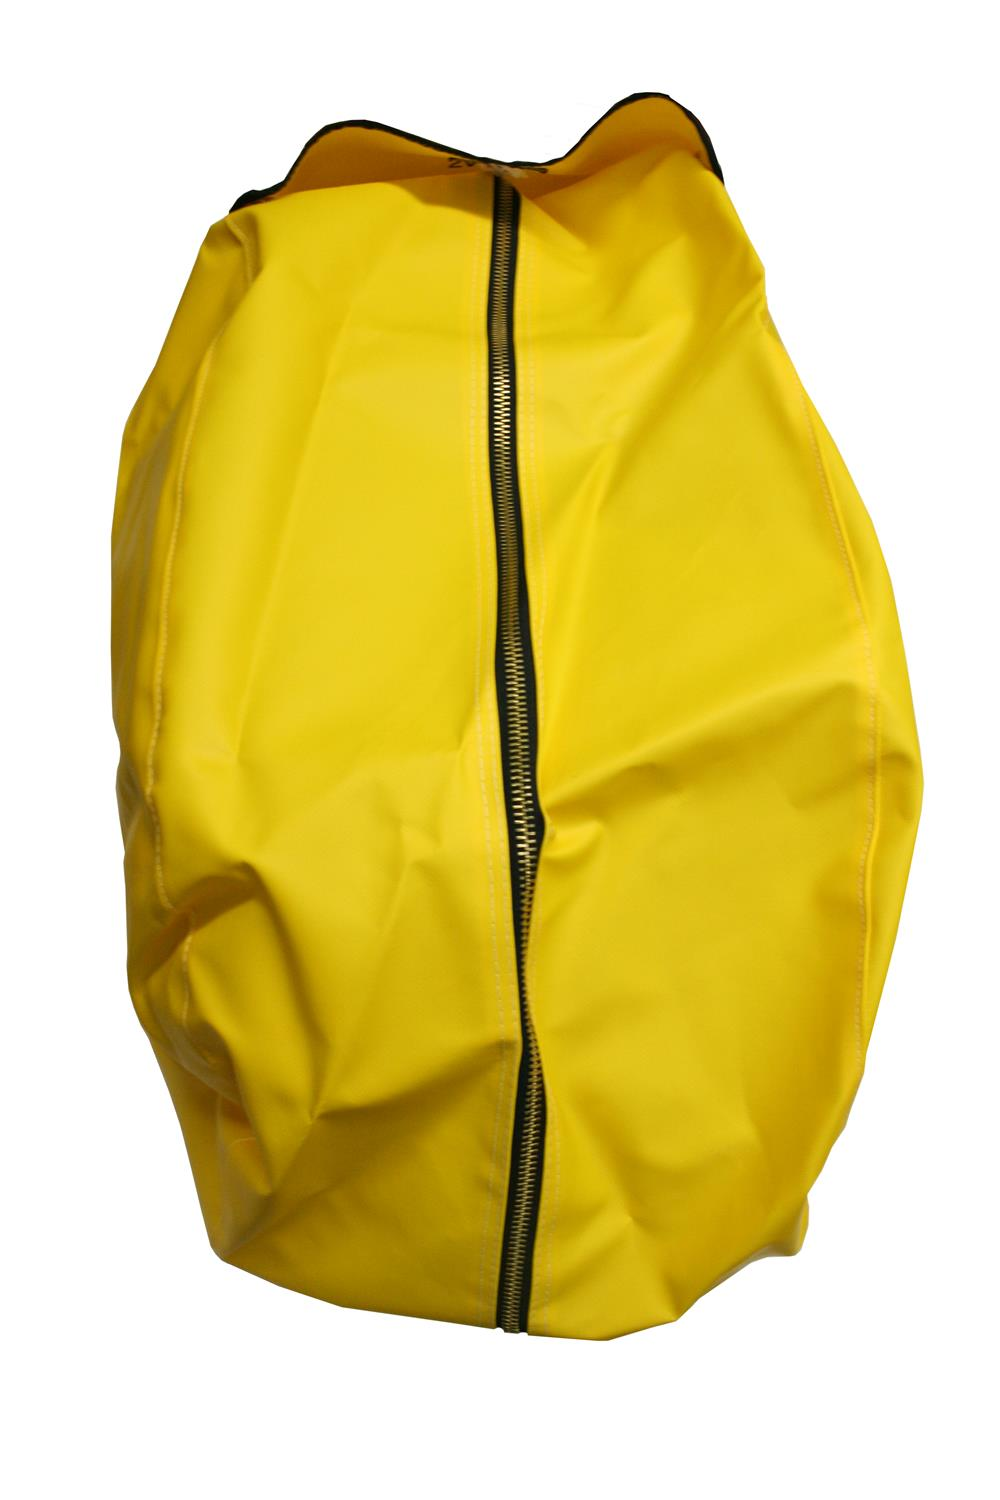 QUIC-PAC SCBA Cover w/ Zipper – Yellow